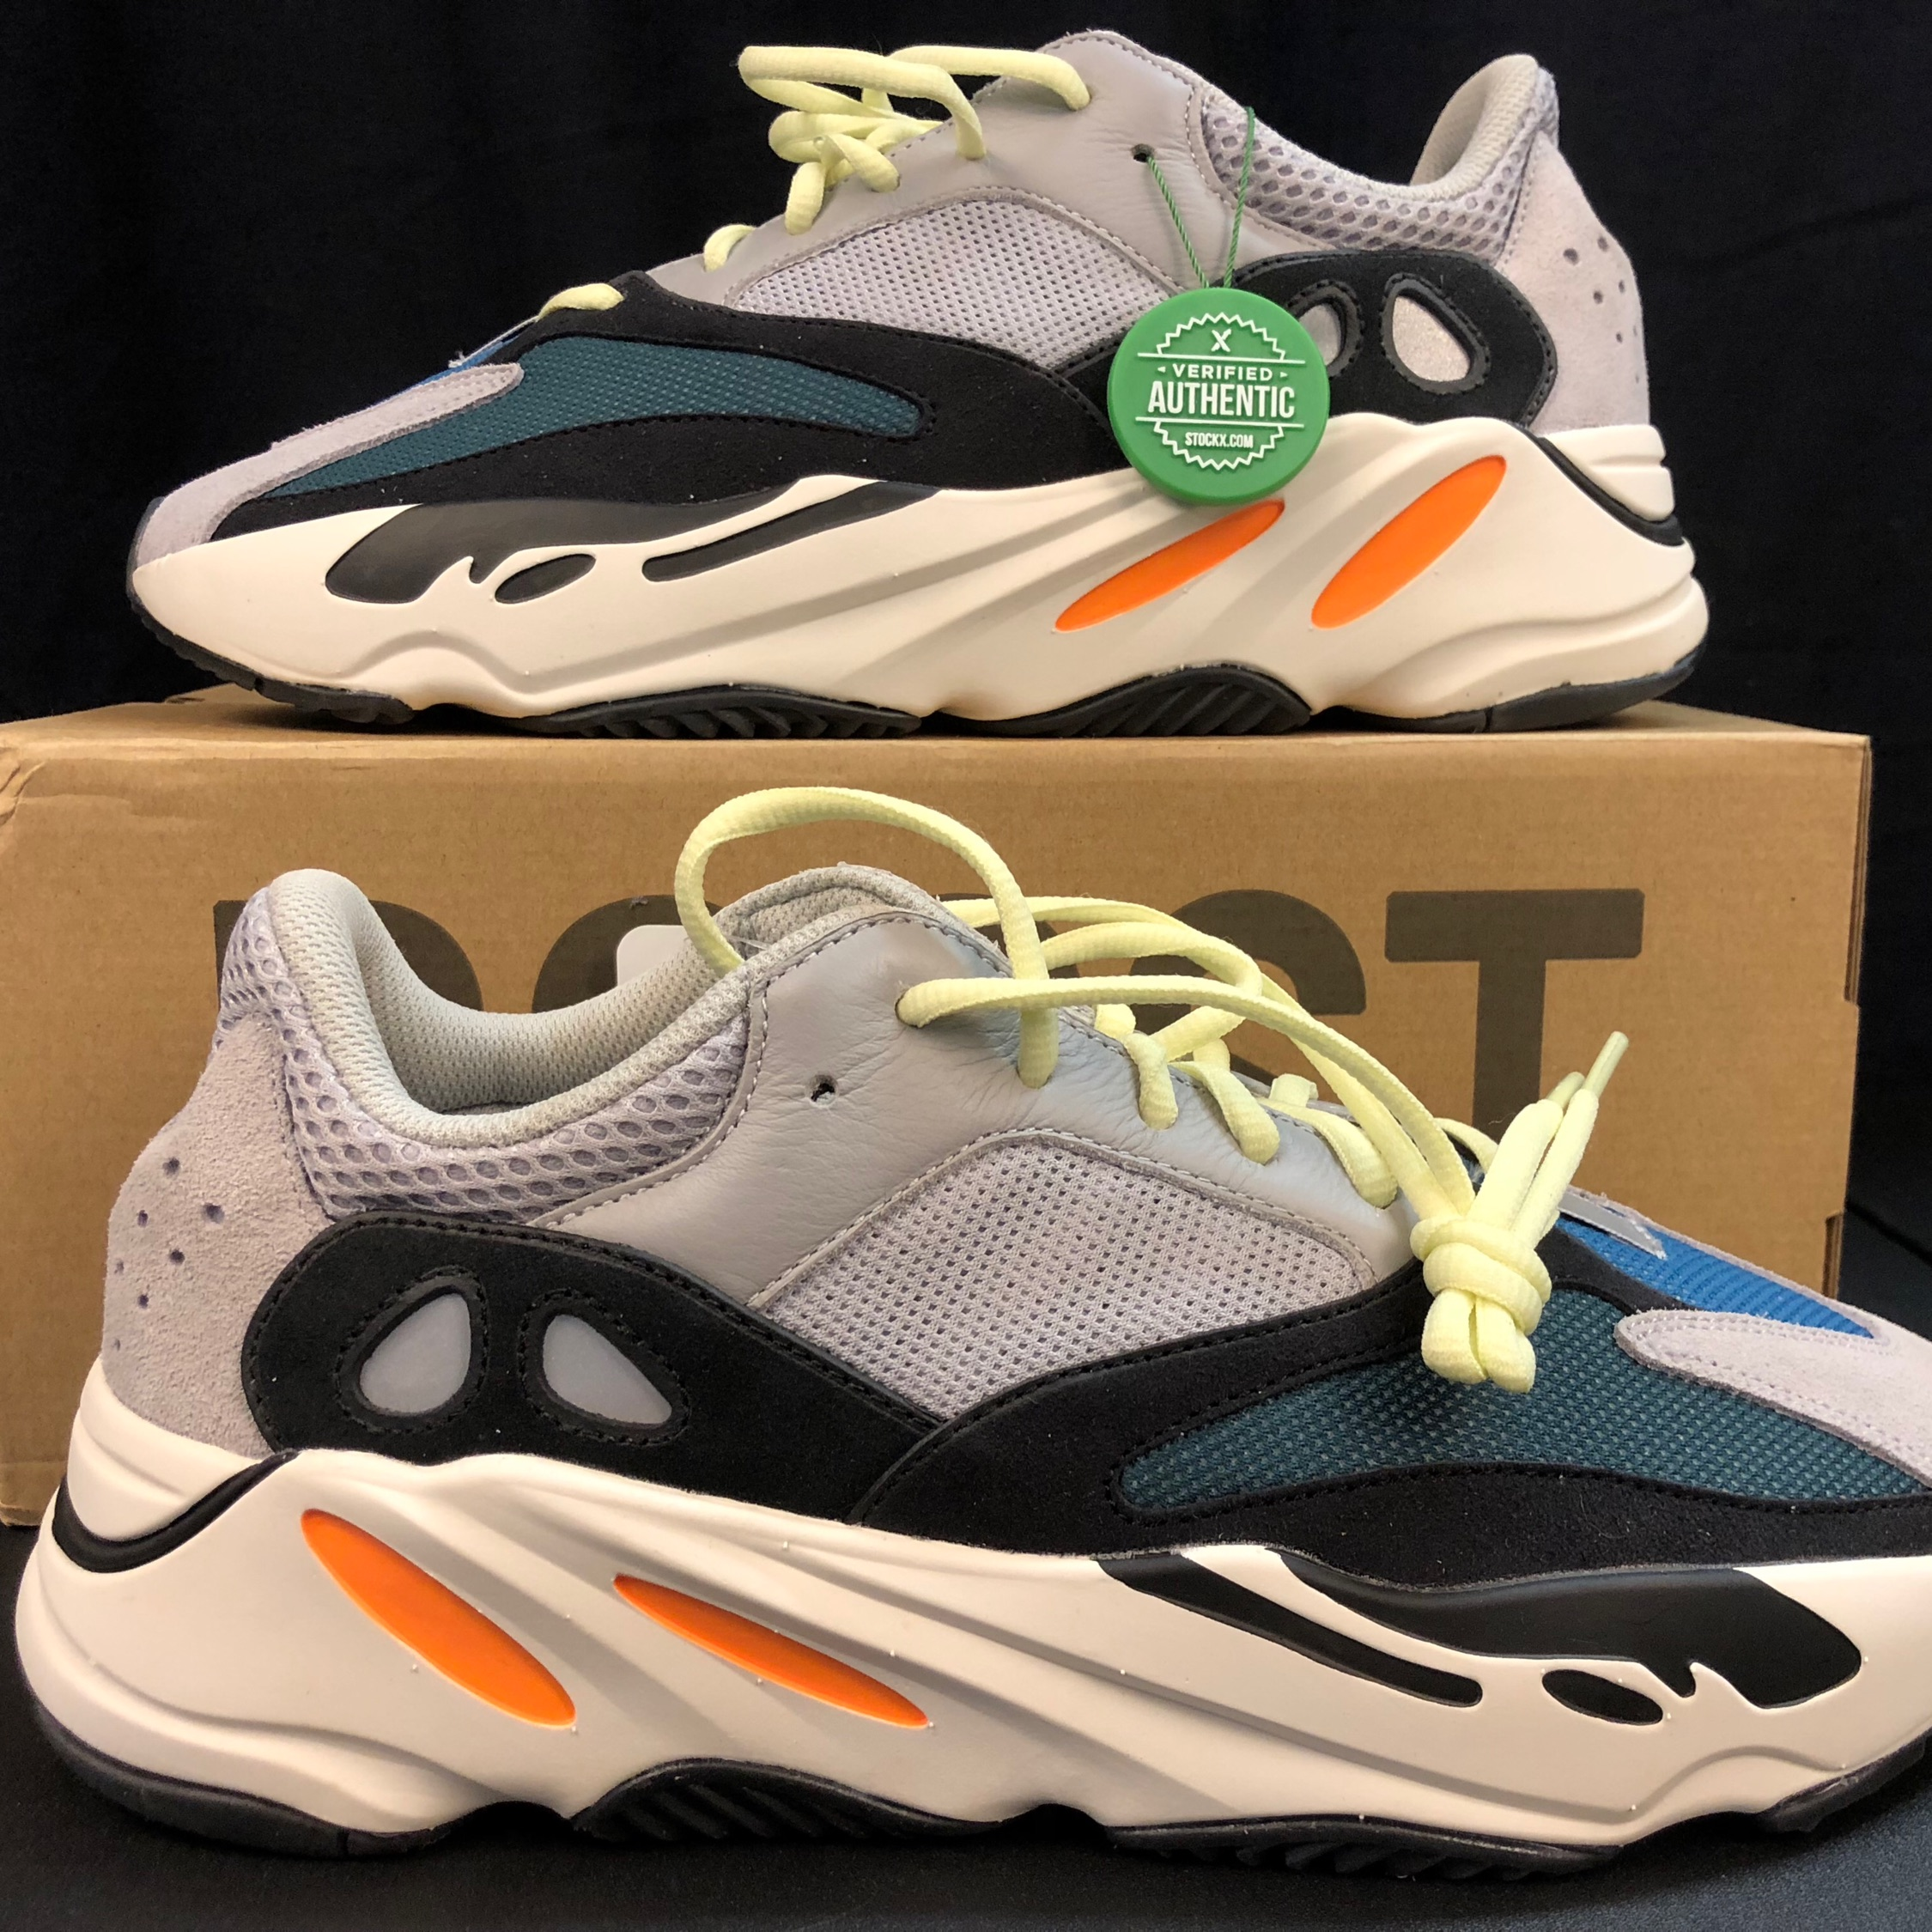 quality design 7fa39 b304a Adidas Yeezy Boost 700 Wave Runner Size 11